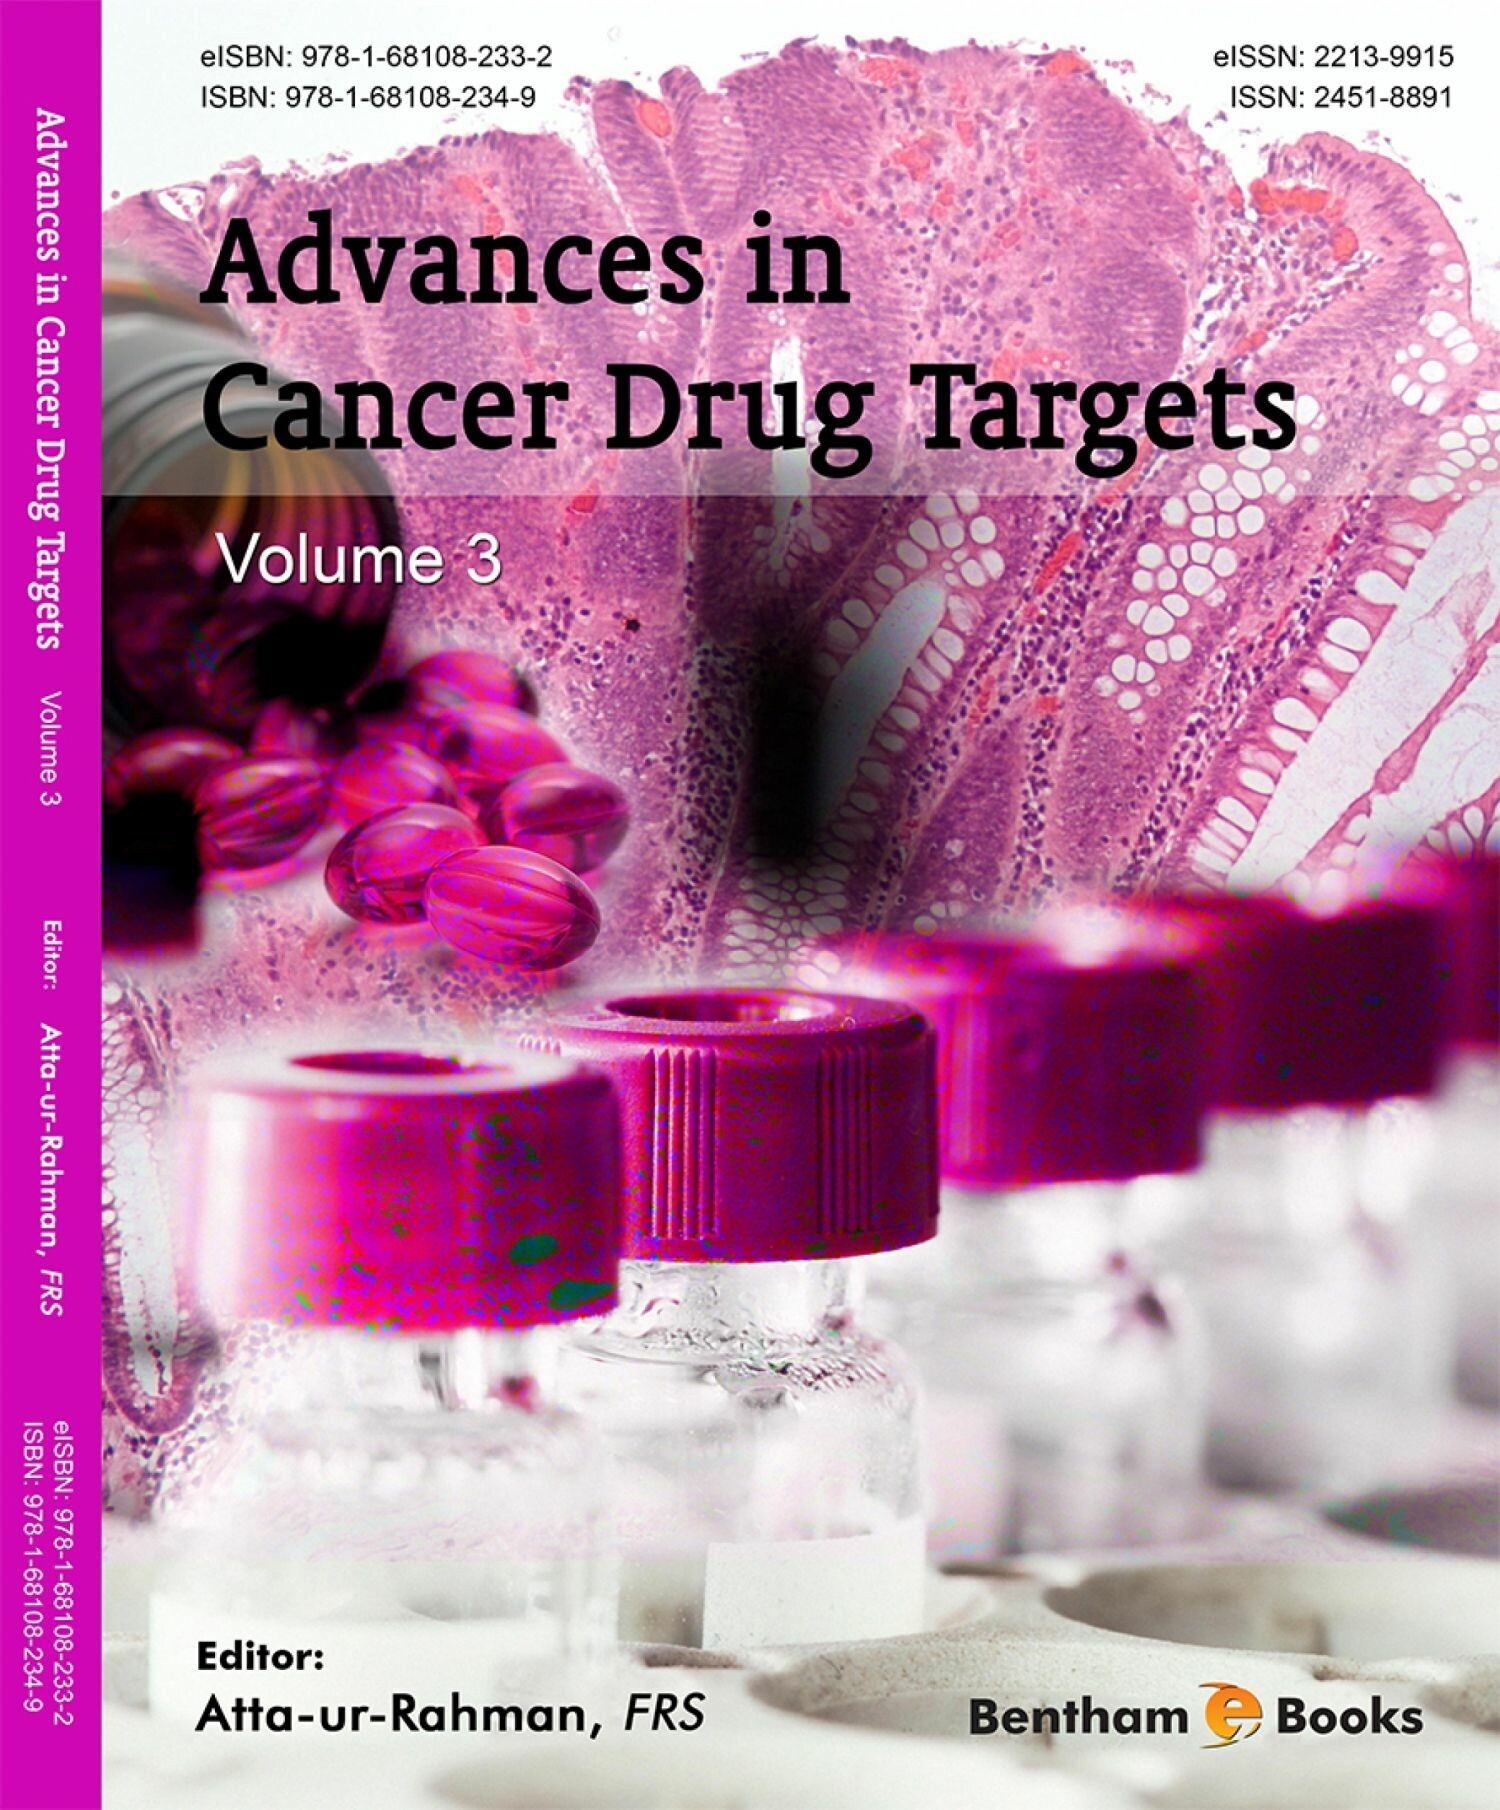 Advances in Cancer Drug Targets: Volume 3